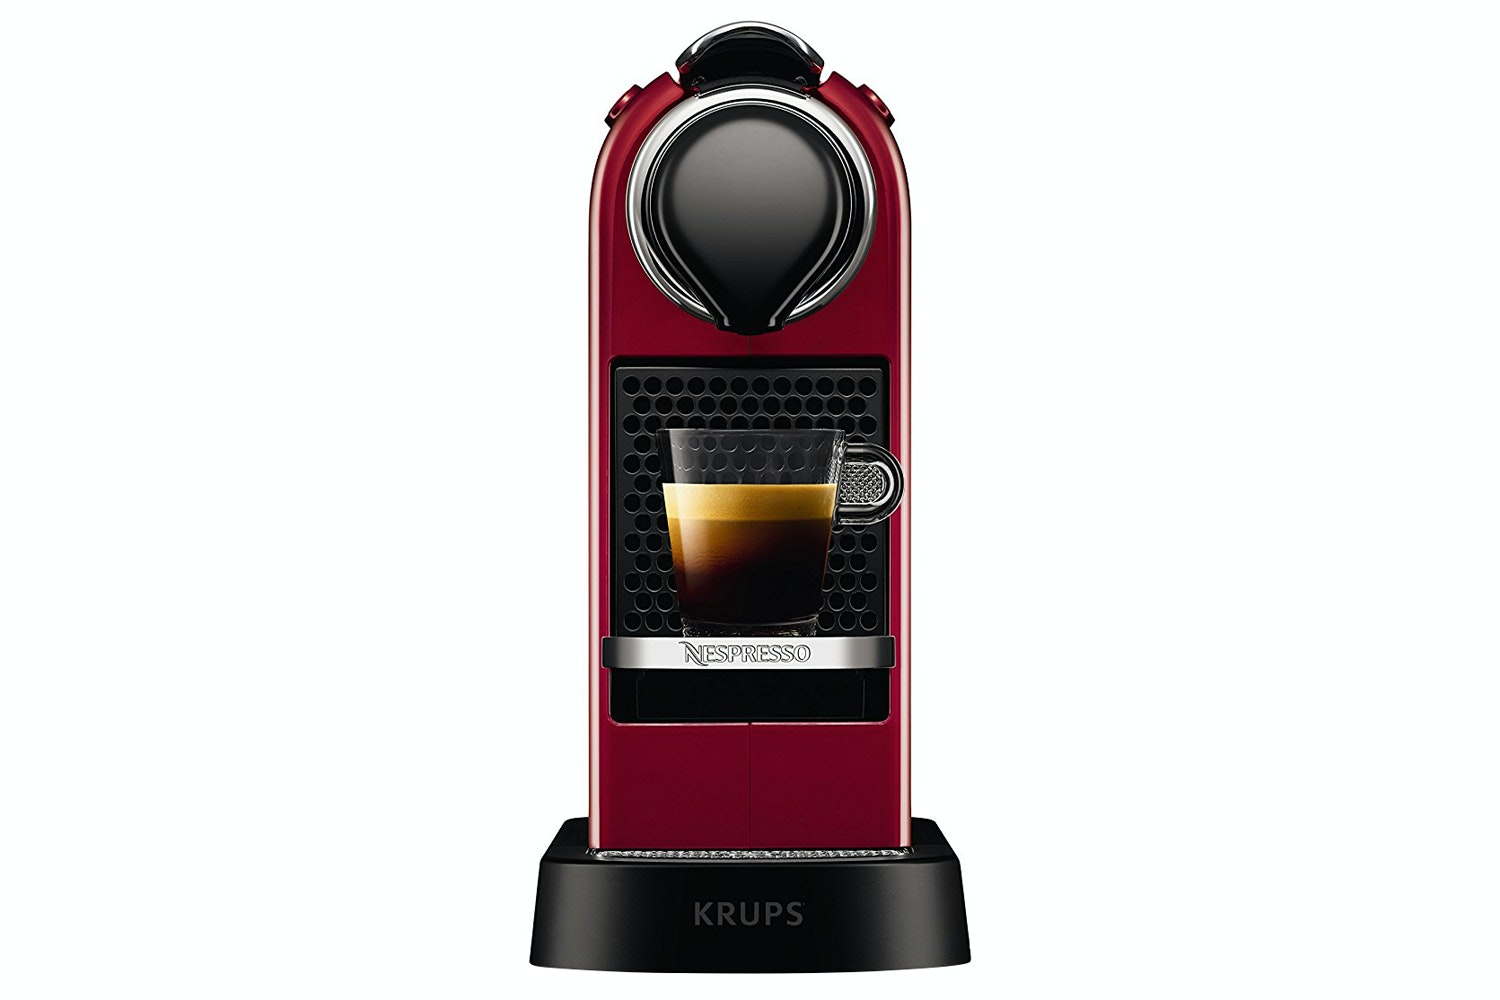 Krups Citiz Cherry Red Coffee Machine | XN740540